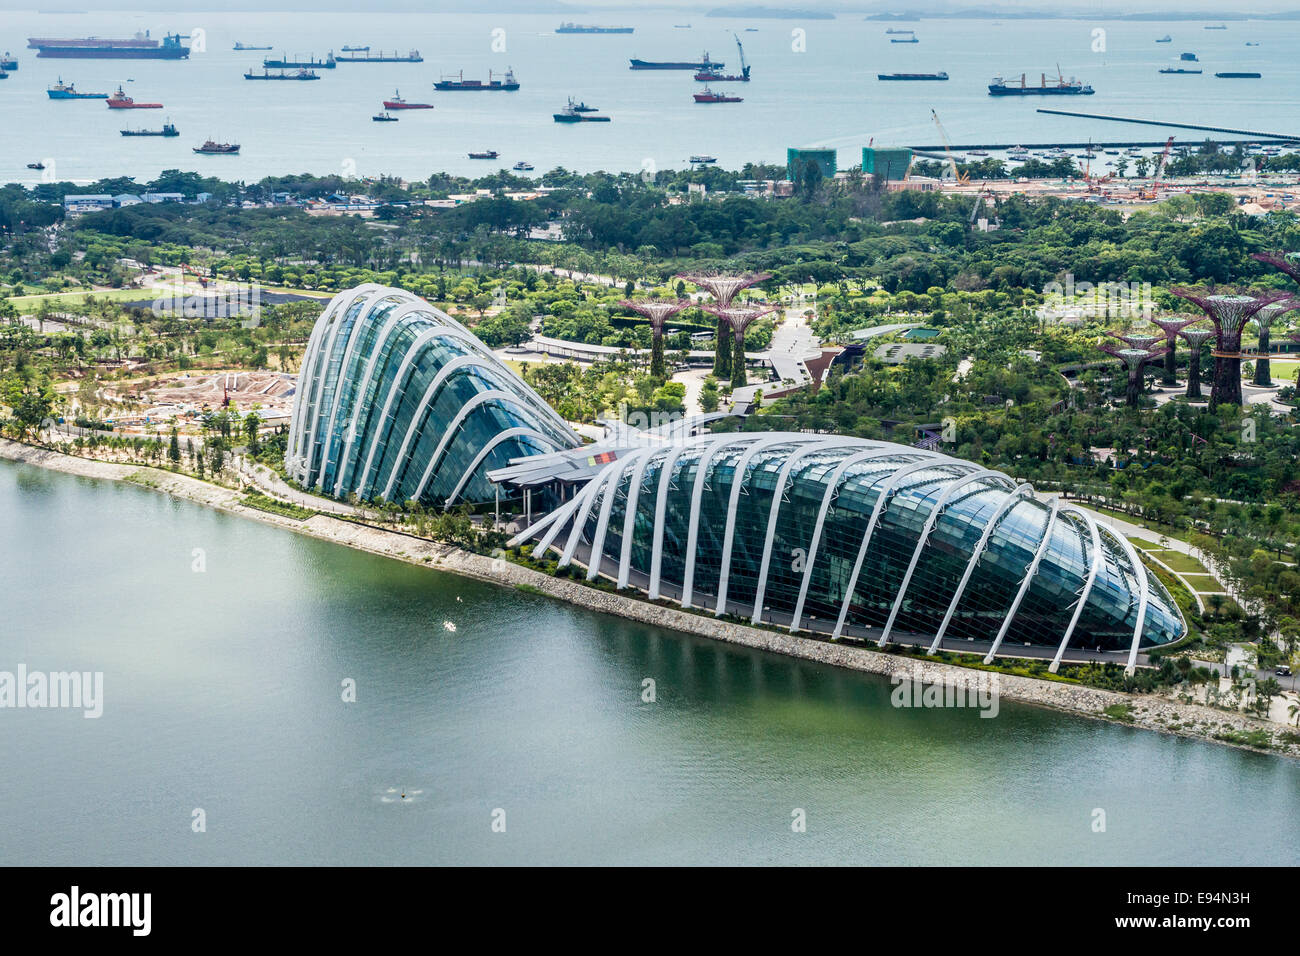 Flower Dome and Cloud Forest dome in Gardens by the Bay, singapore with many ships at anchor in the background. - Stock Image